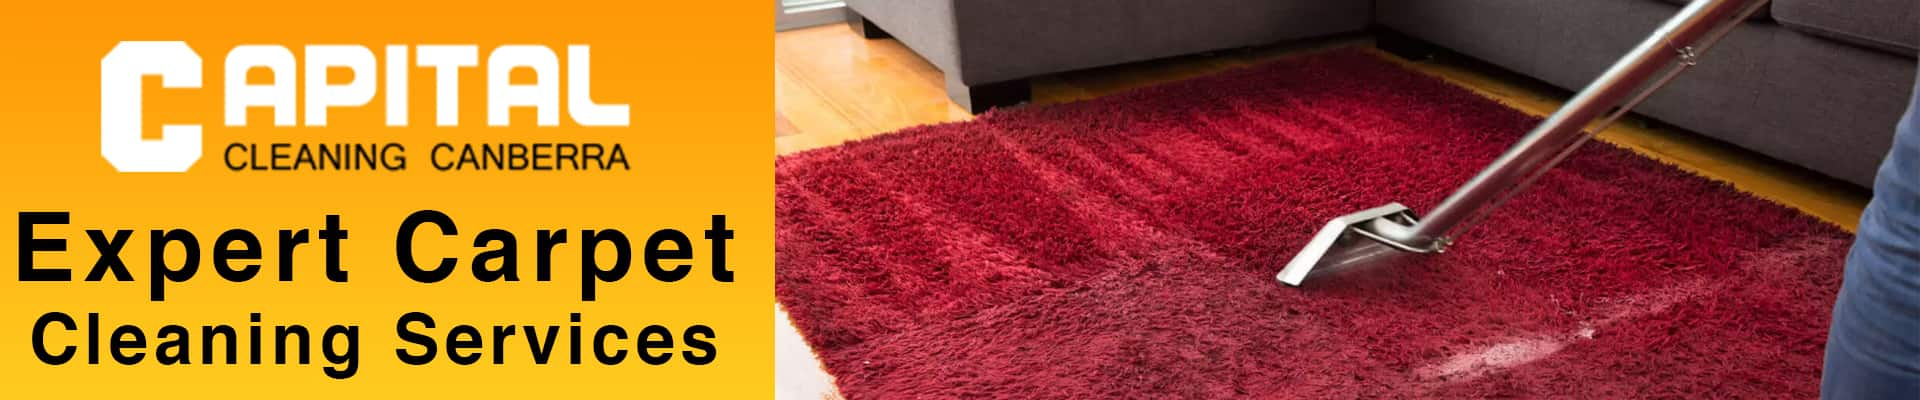 Expert Carpet Cleaning Services Farringdon